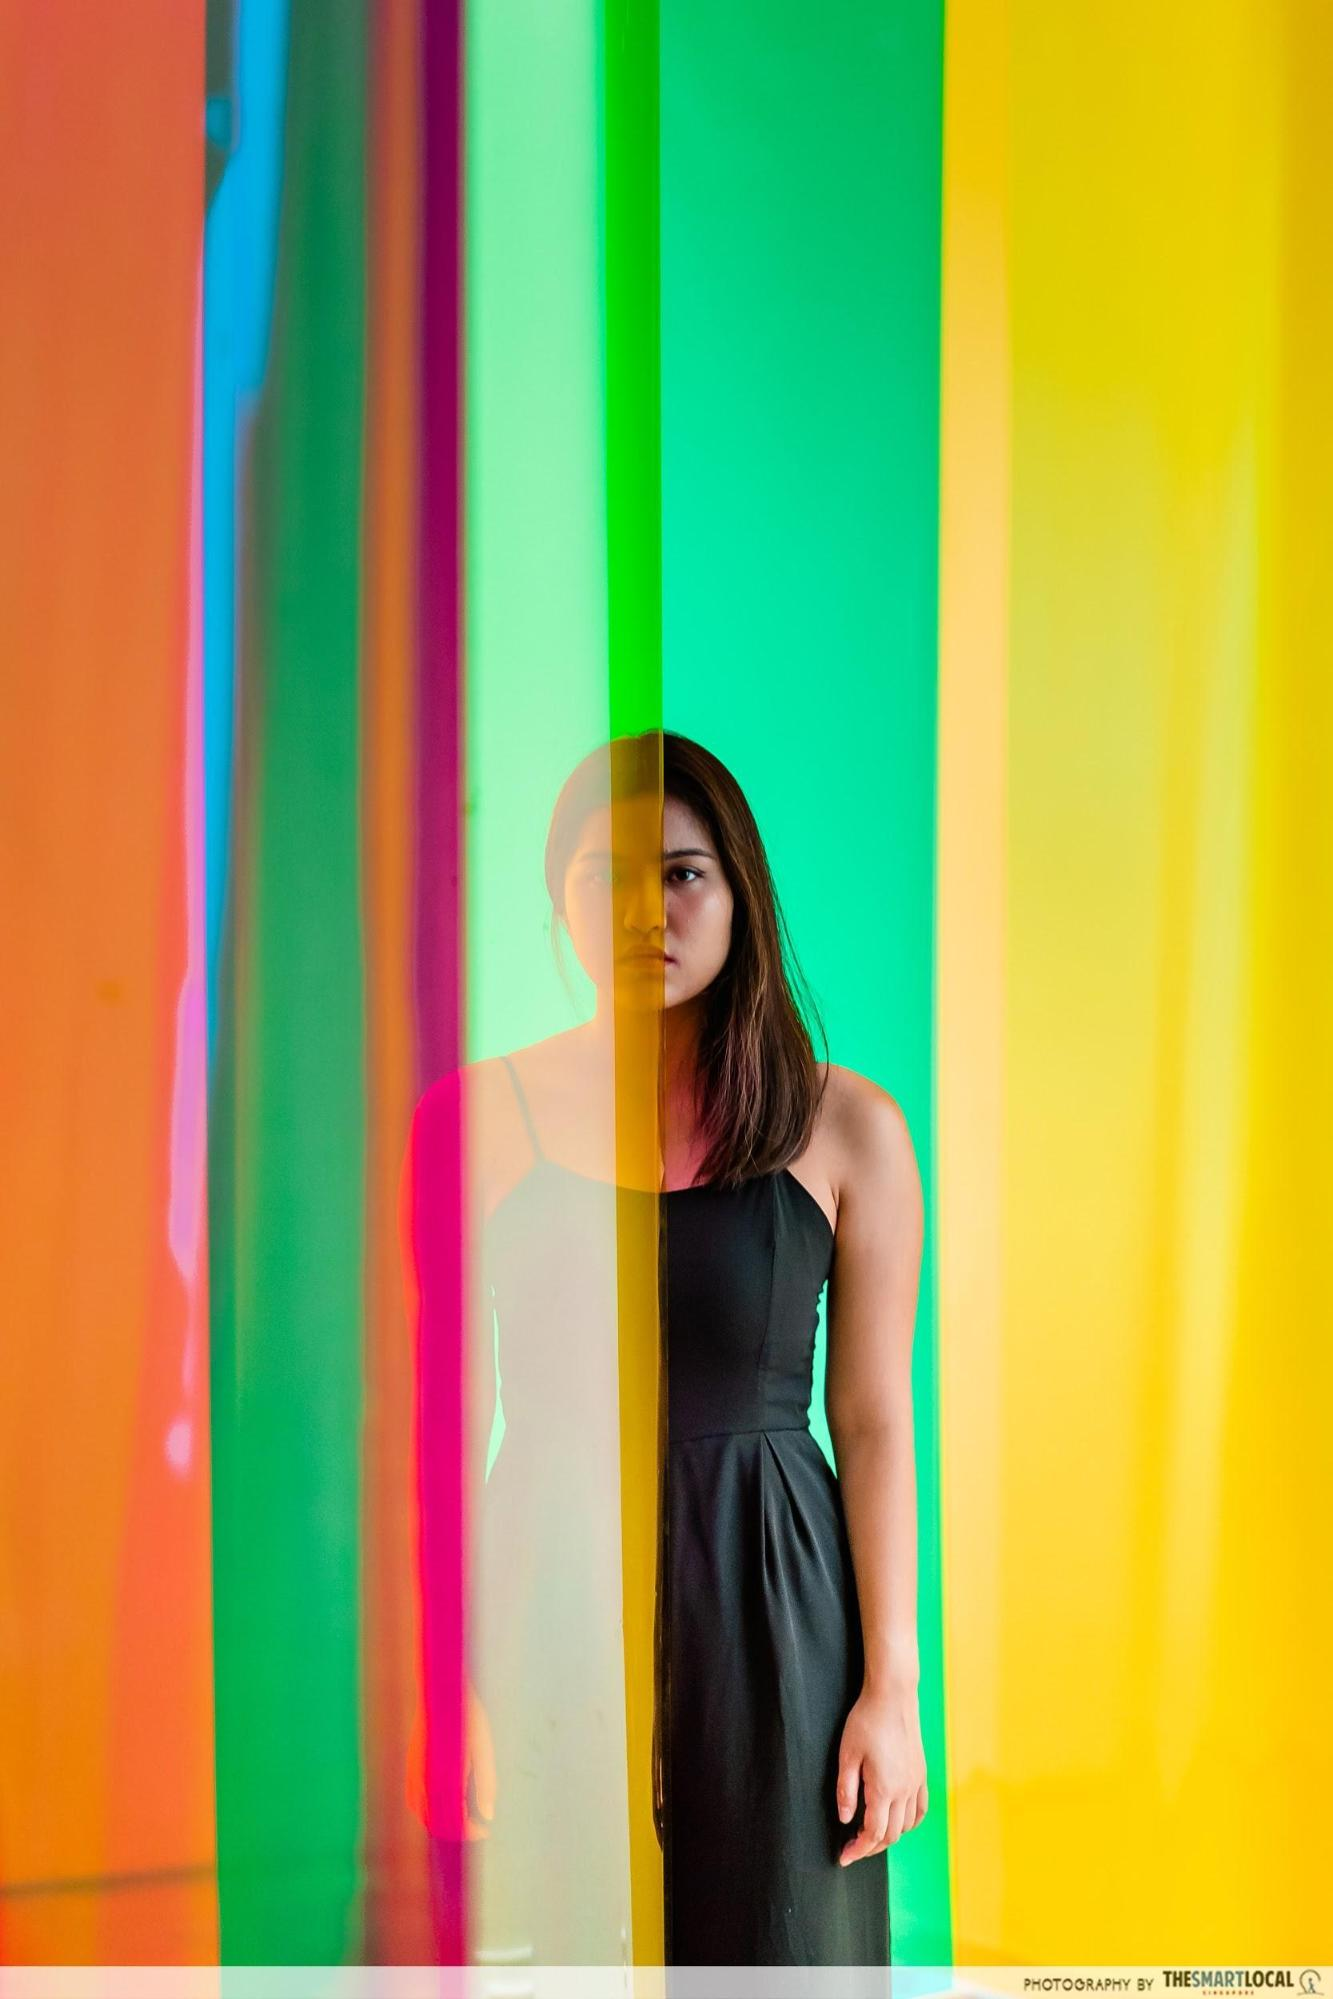 model standing between translucent colored sheets